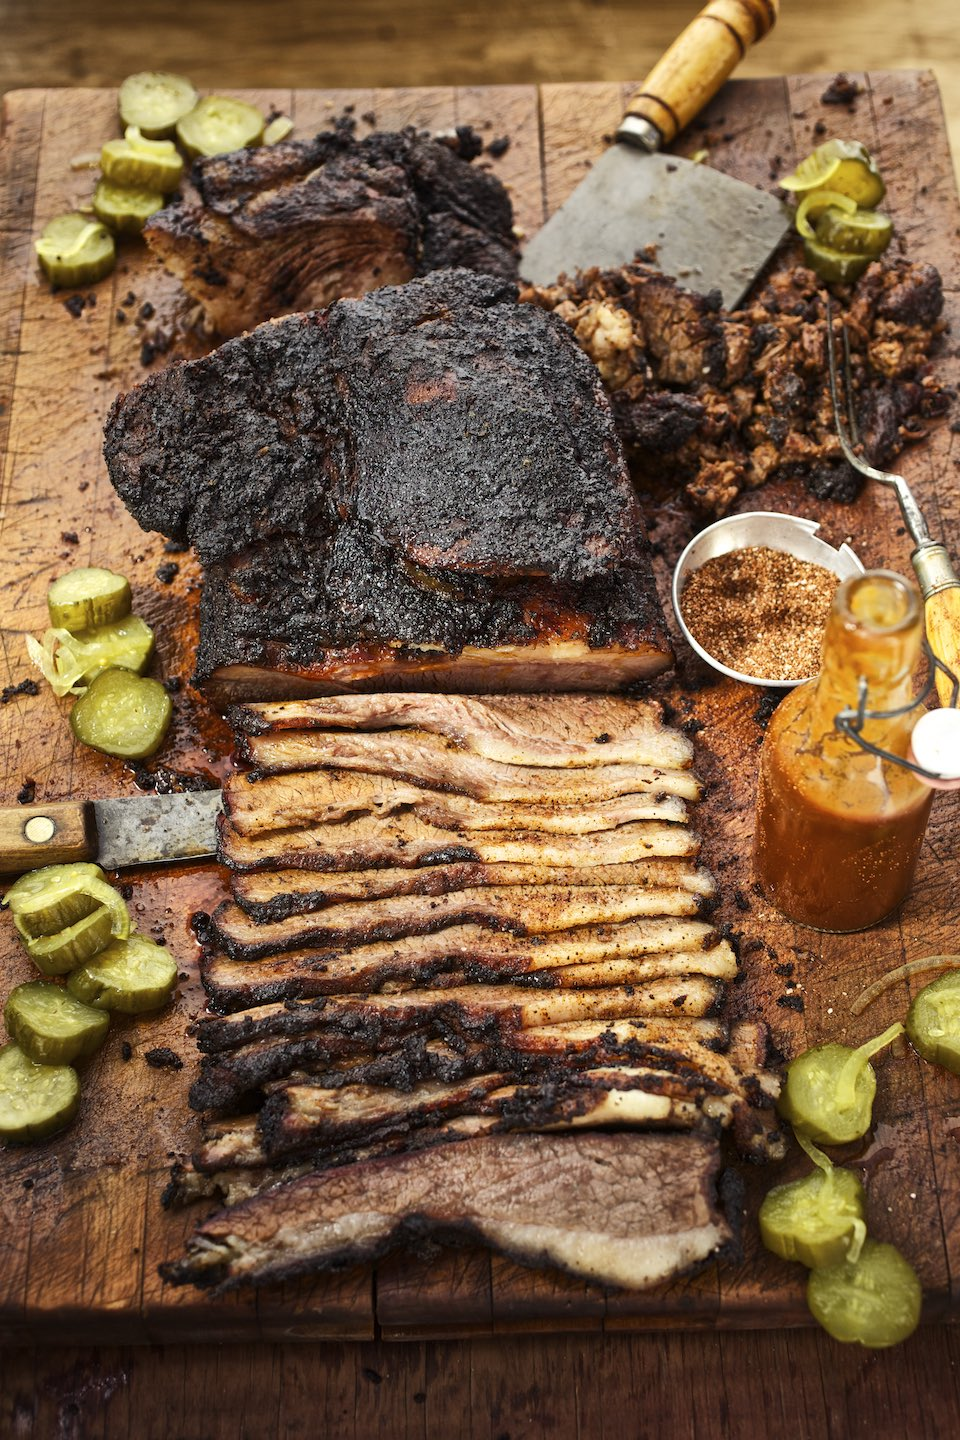 Half carved brisket with pickles and barbecue sauce on a wood cutting board.